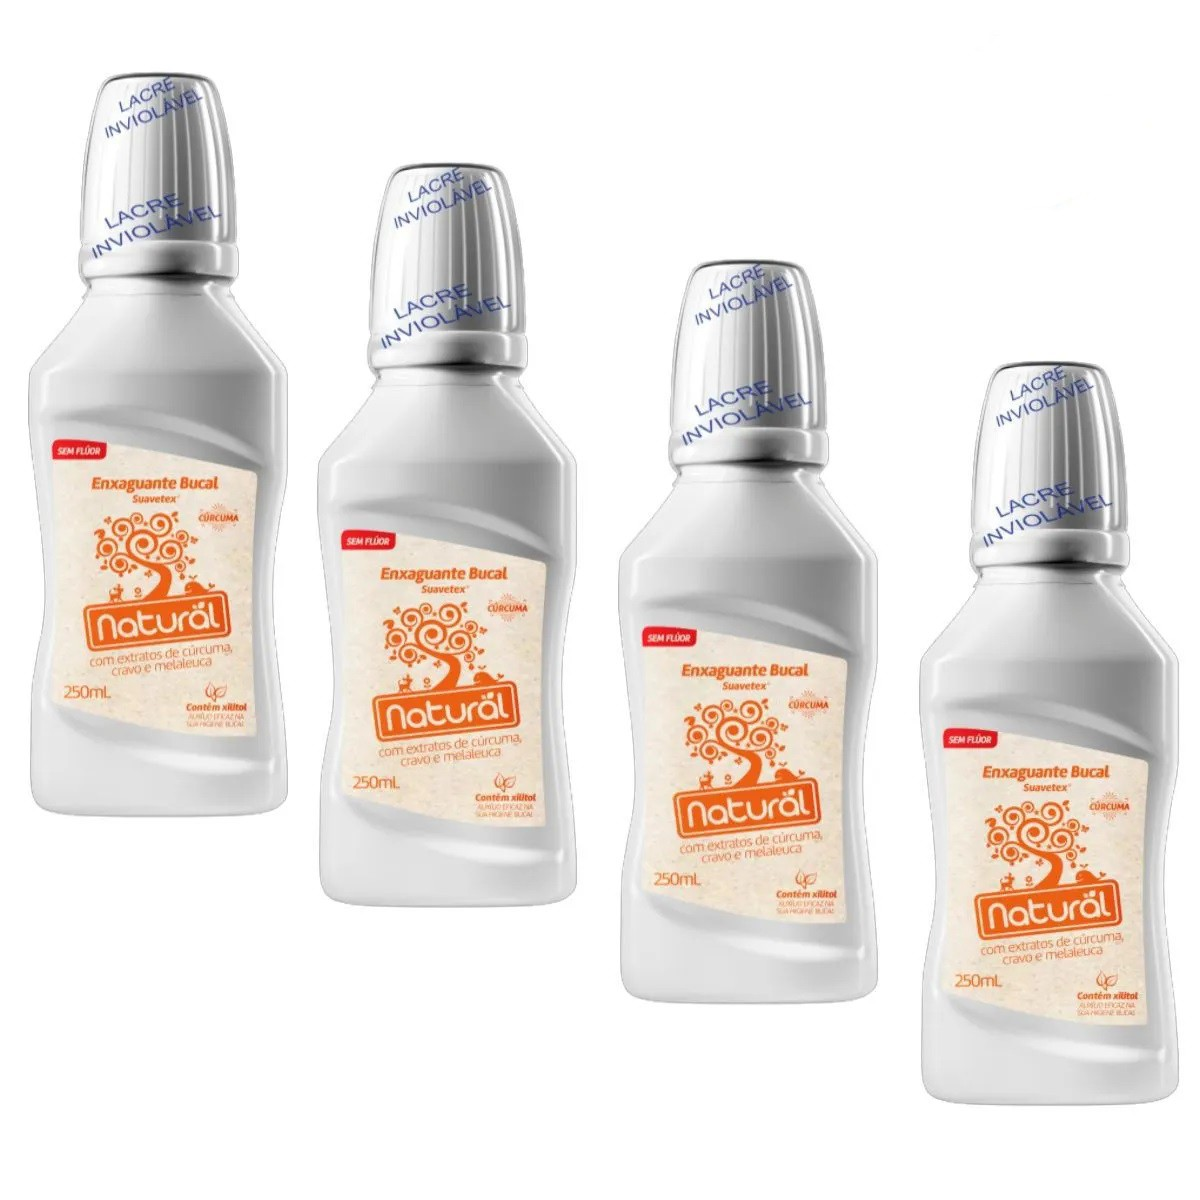 Kit 4 Enxaguante Bucal Suavetex Natural C/ Extratos Cúrcuma, Cravo e Melaleuca - 250ml